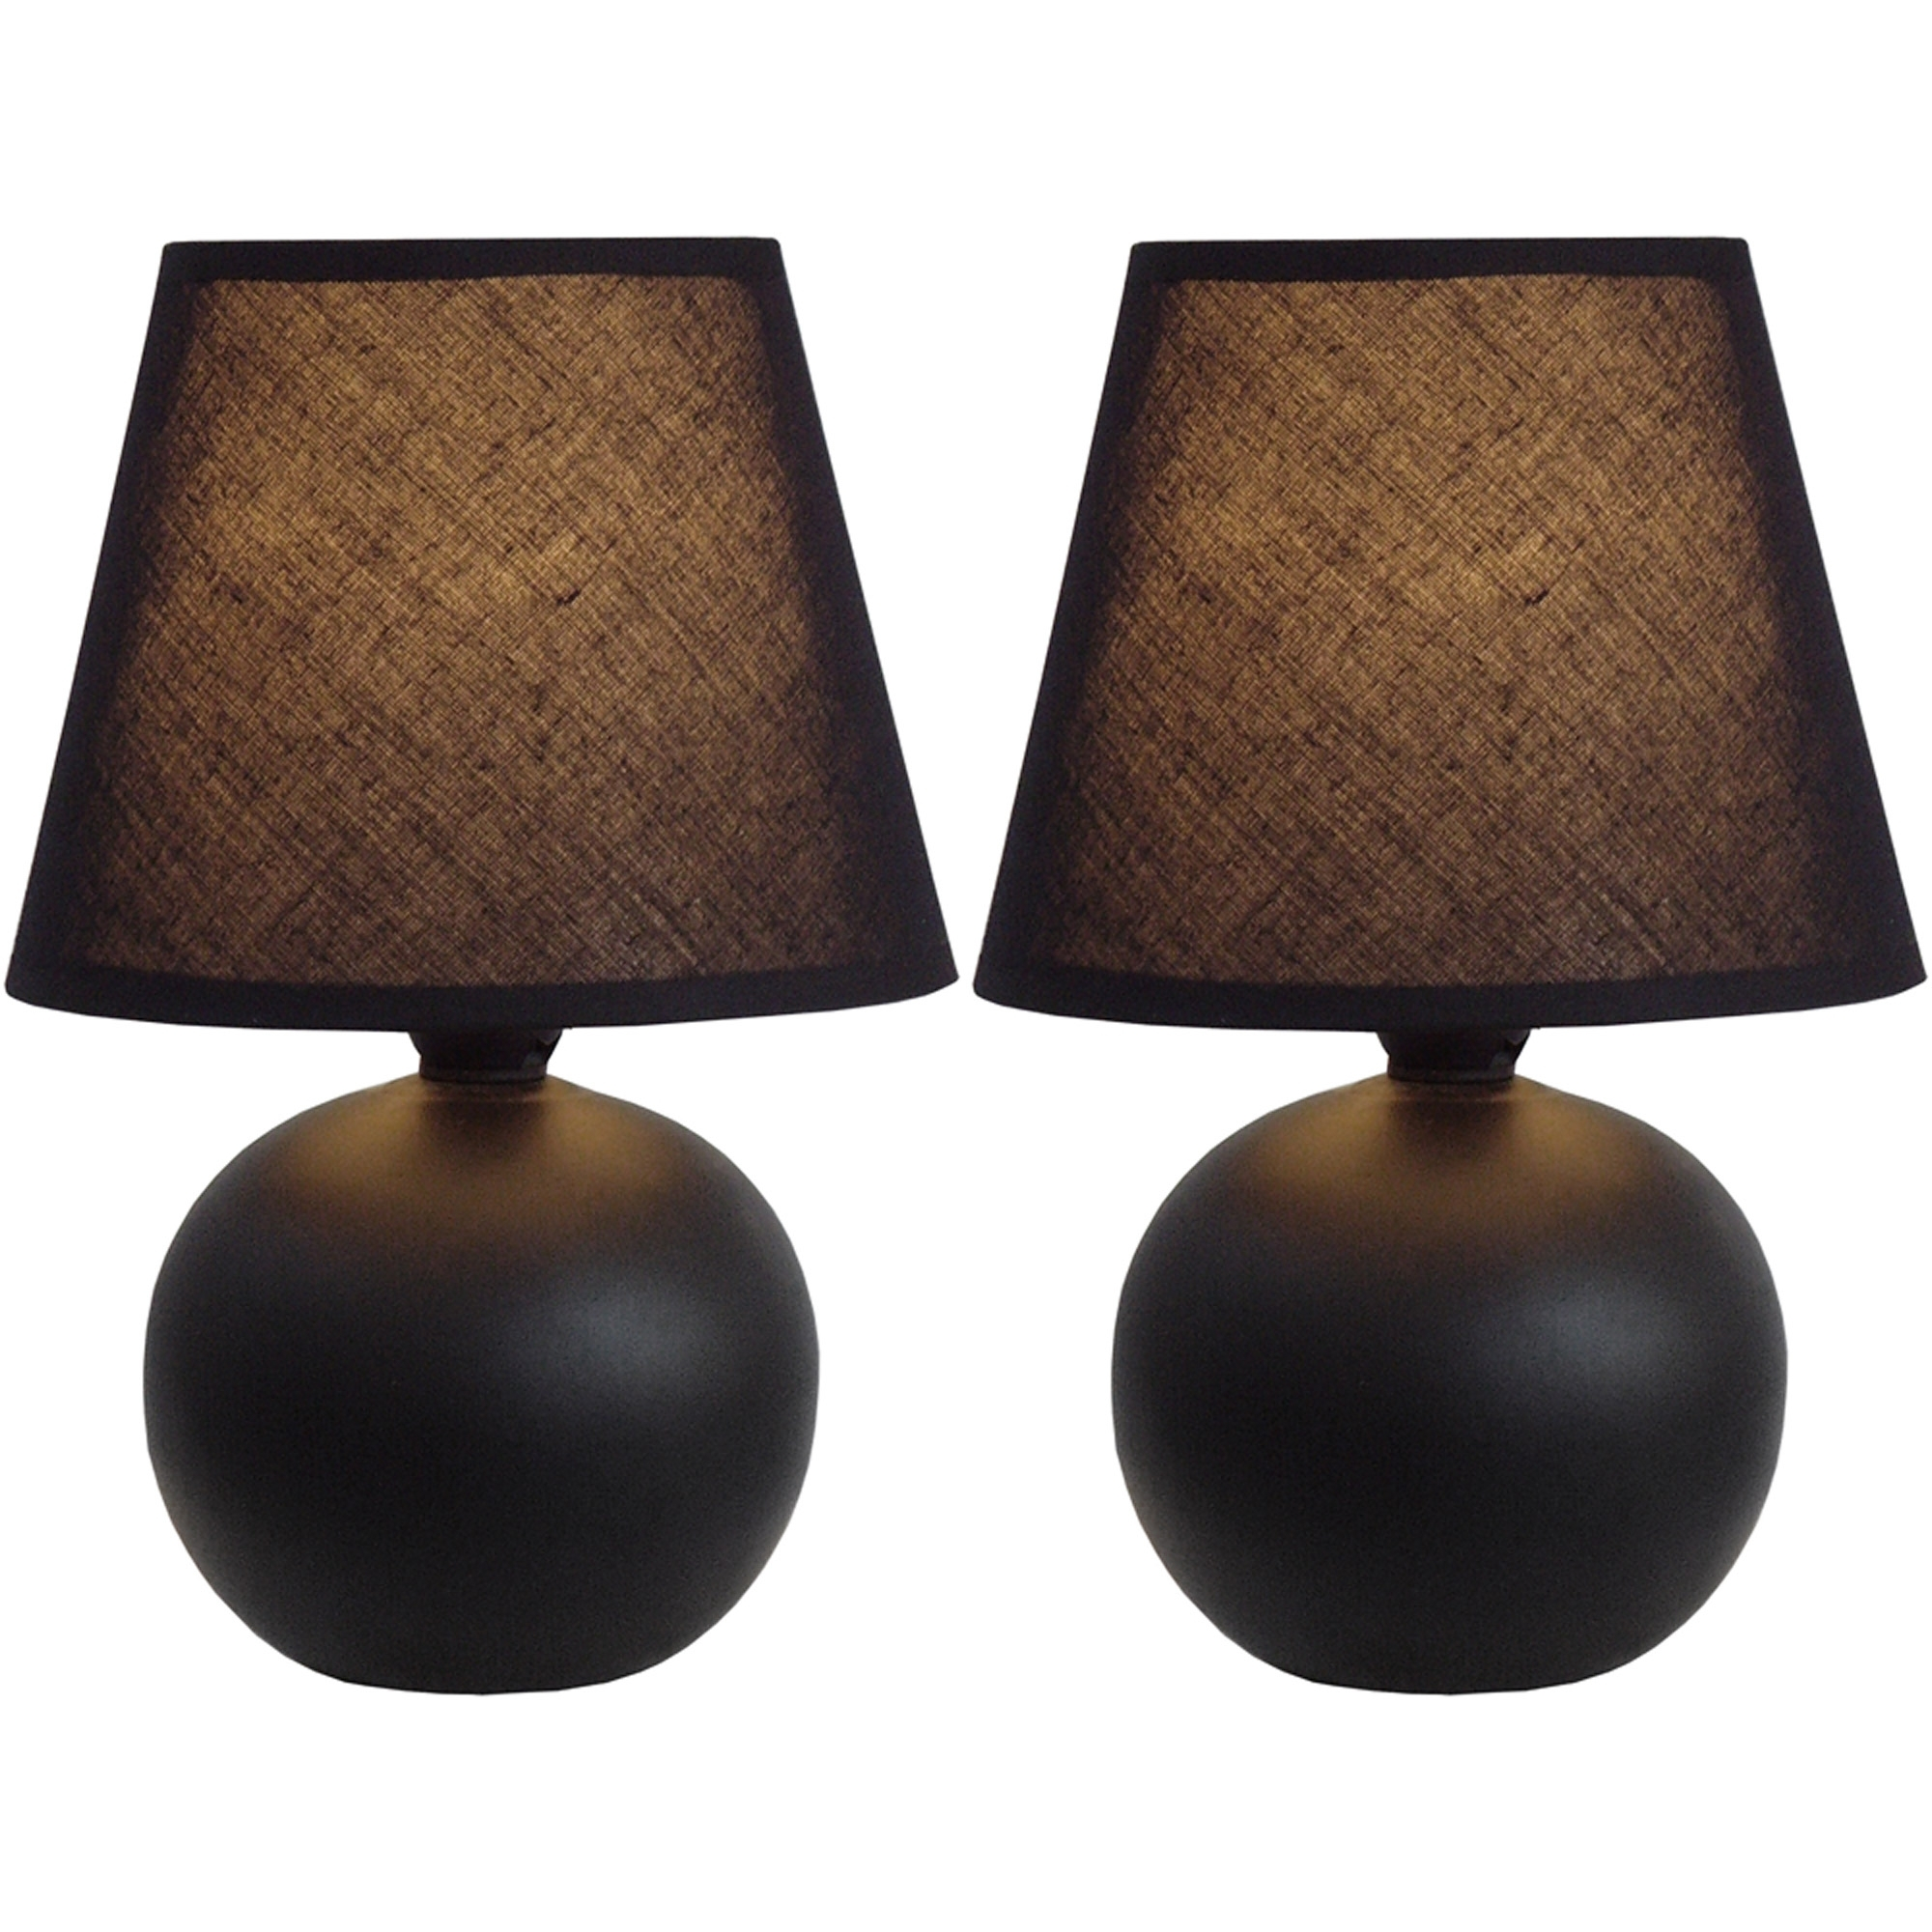 Inspiration about Table Lamp In Dark Bronze – Set Of 2 – Walmart Inside Living Room Table Lamps Sets (#2 of 15)